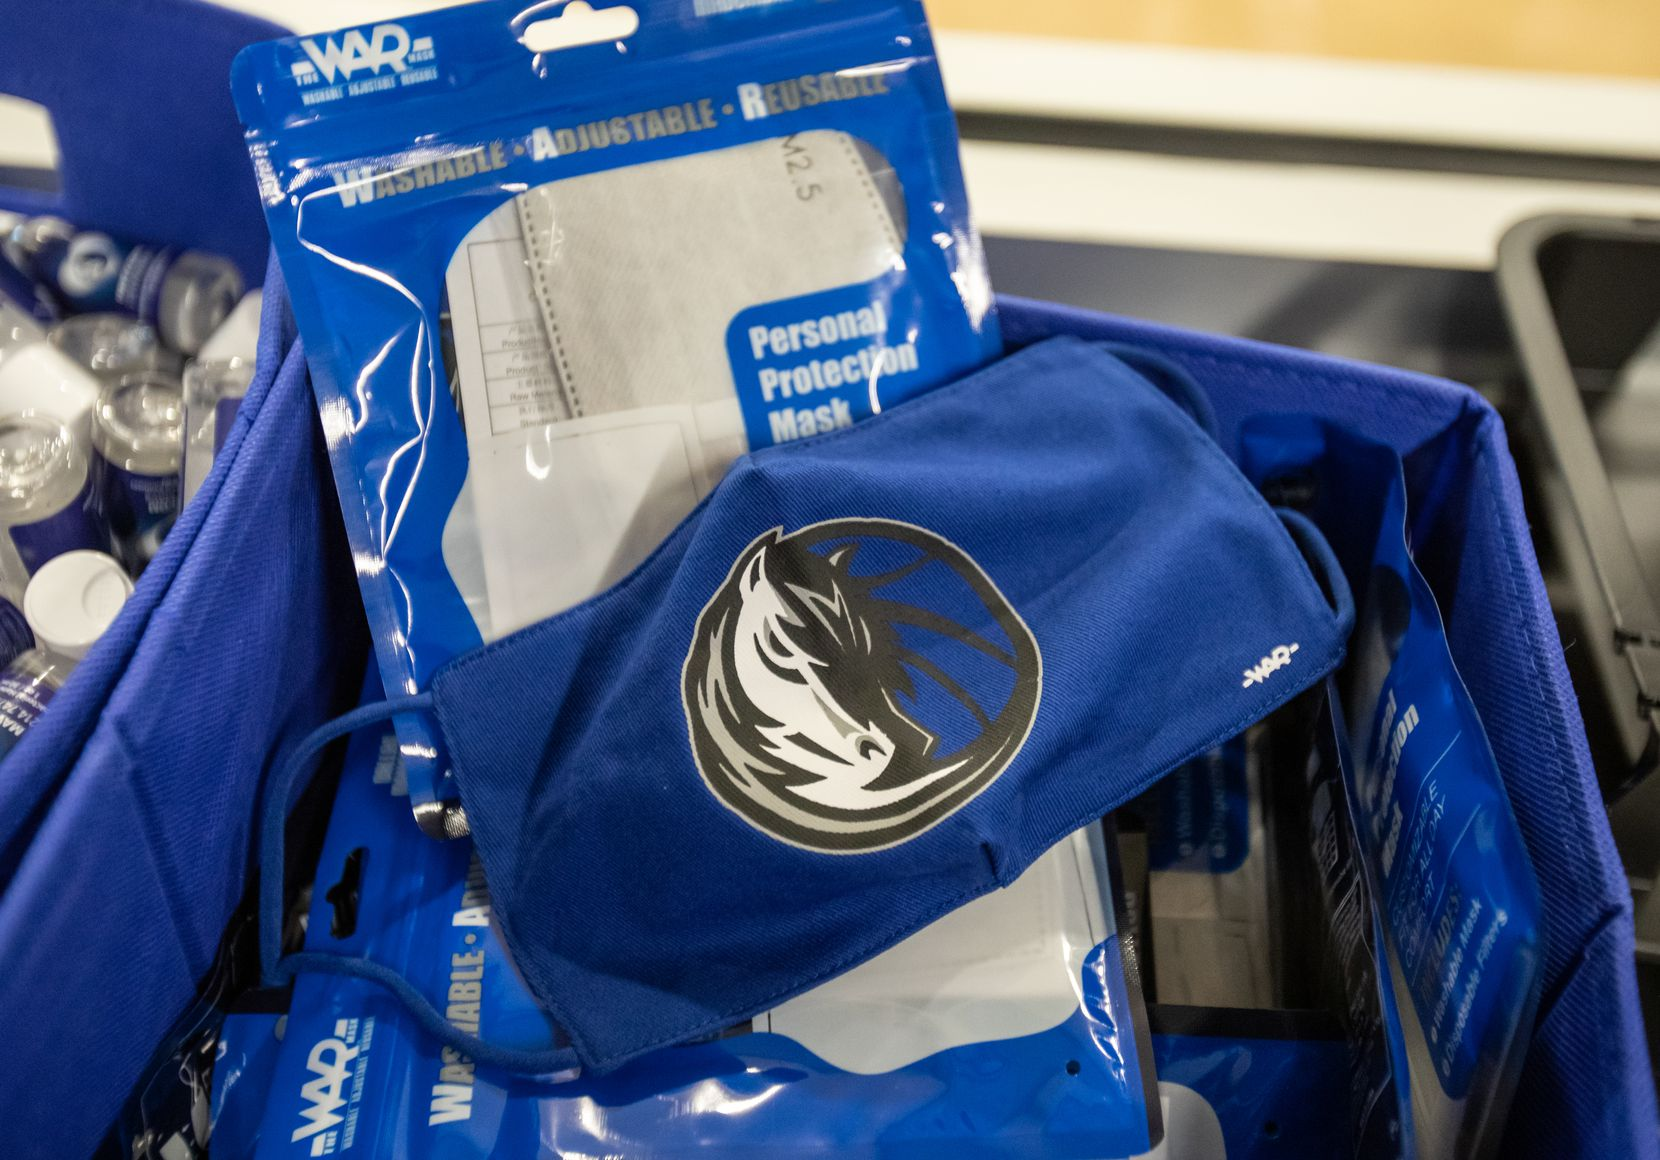 The Mavs pledged a $1 million PPE donation to cover every student, teacher and staff member in the Dallas ISD. These donations consist of reusable masks, face shields, hand sanitizer pumps, personal hand sanitizer units and antiviral wipes for classrooms.